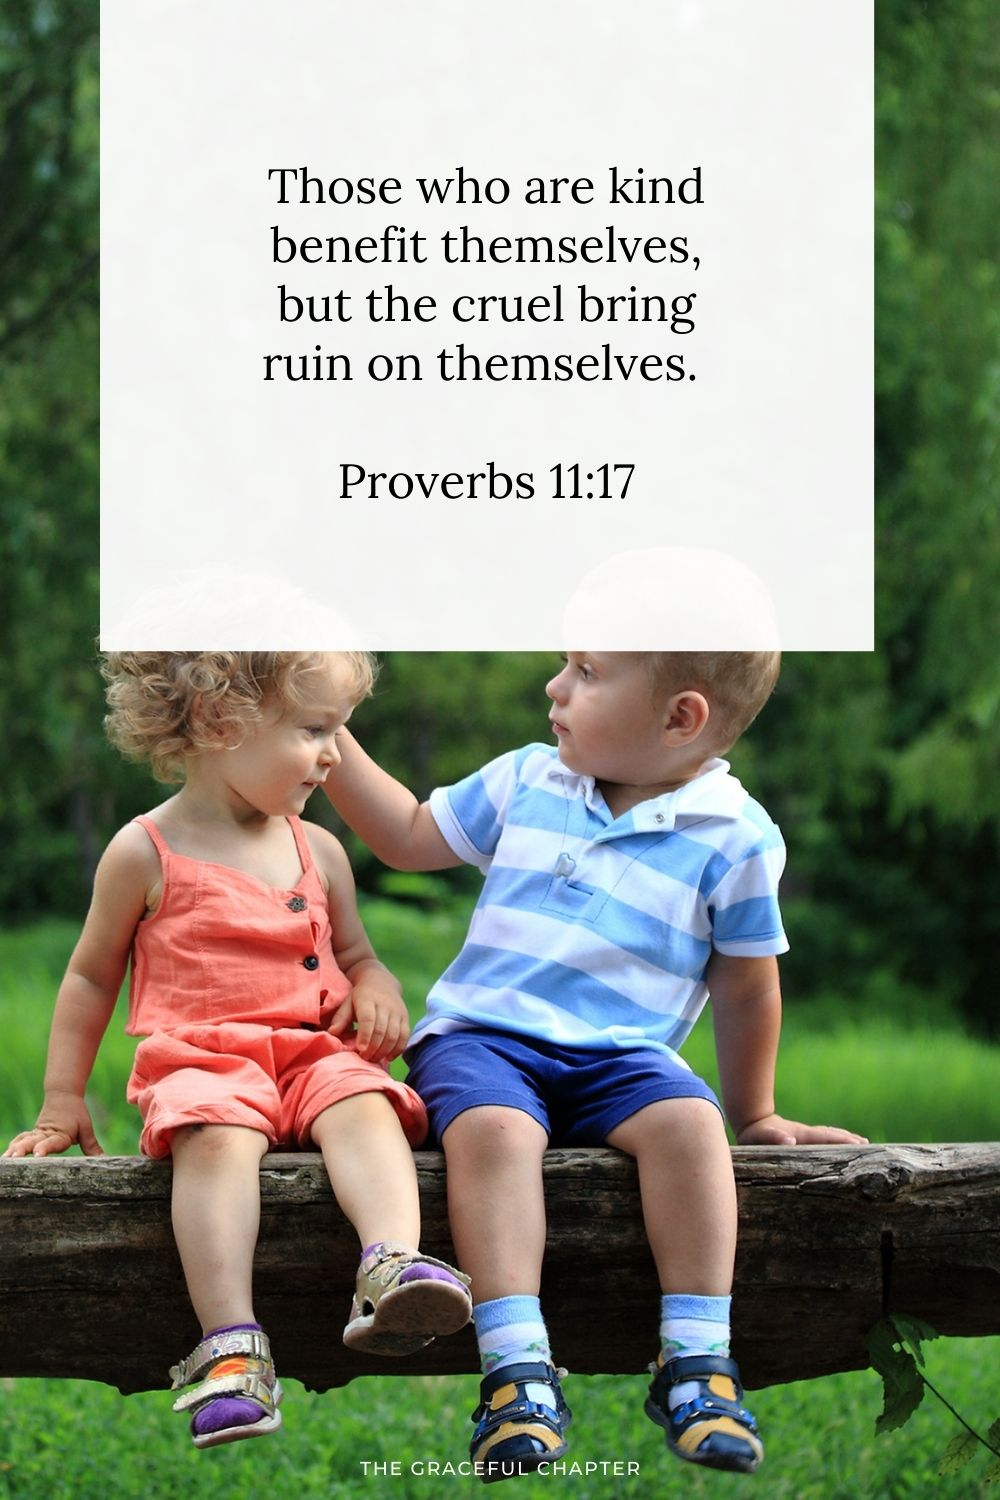 Those who are kind benefit themselves, but the cruel bring ruin on themselves.  Proverbs 11:17